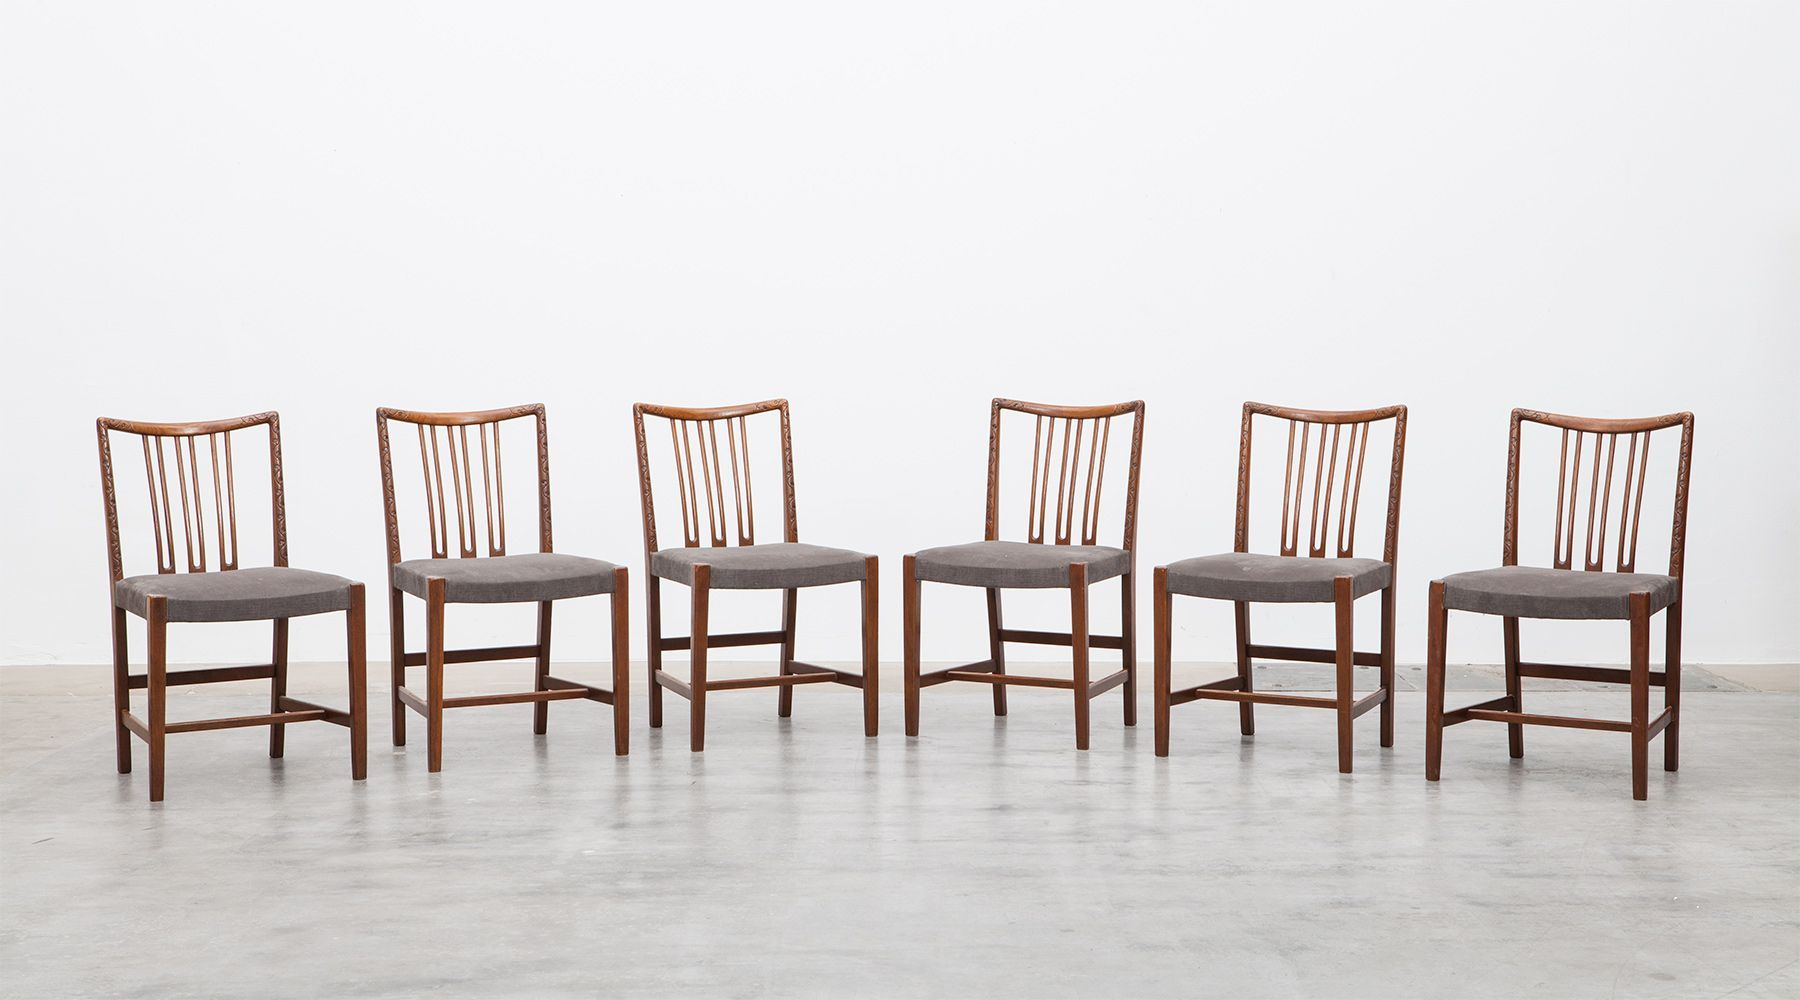 Chairs (6)